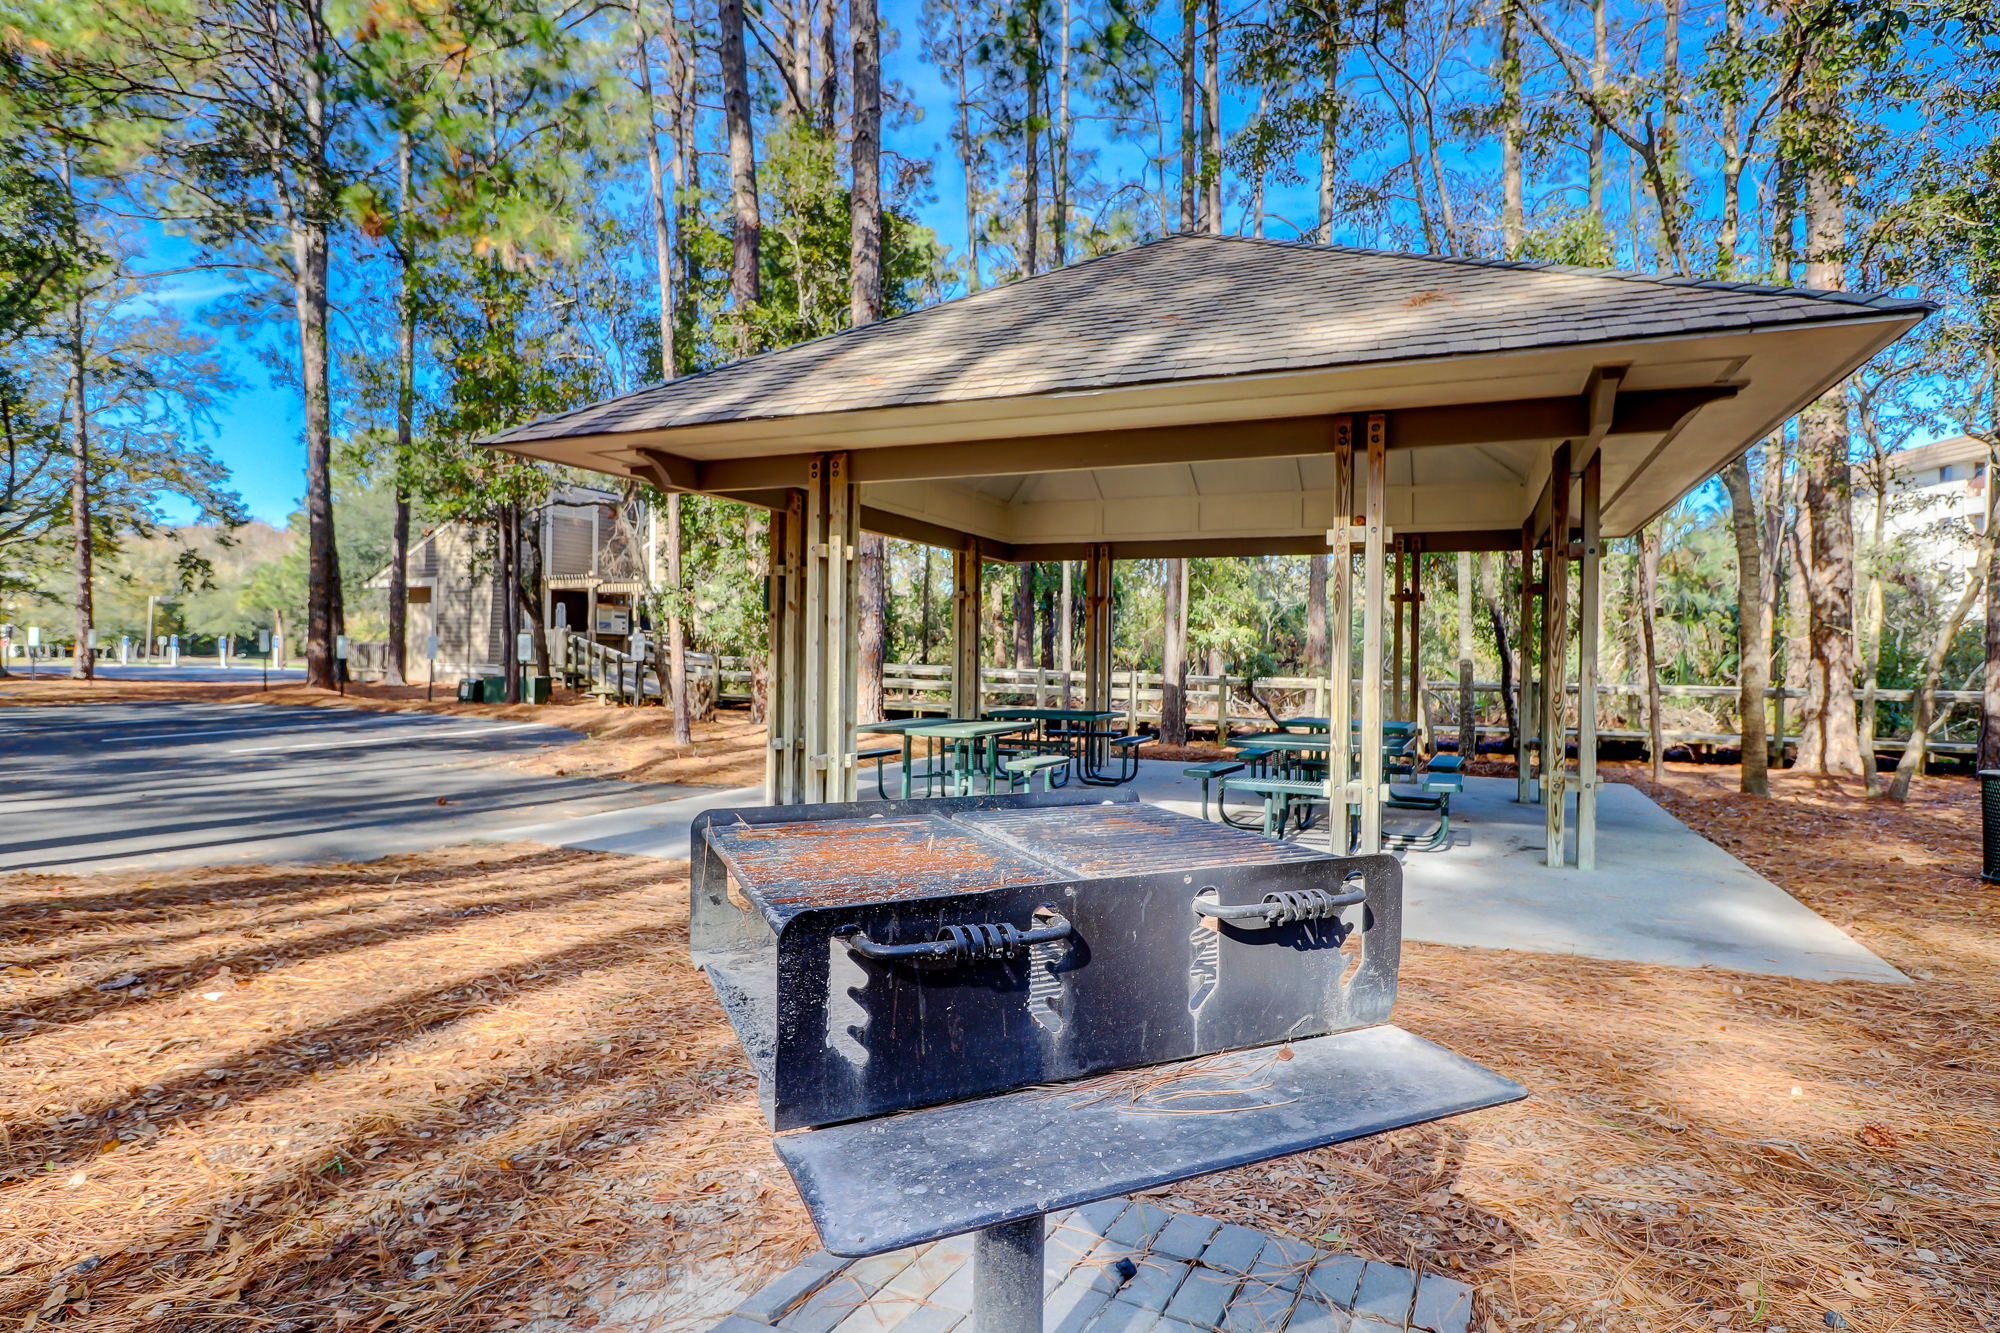 Grills and covered pavilions at Driessen Beach Park.8 Bradley Beach, Hilton Head Island, MLS# 388240